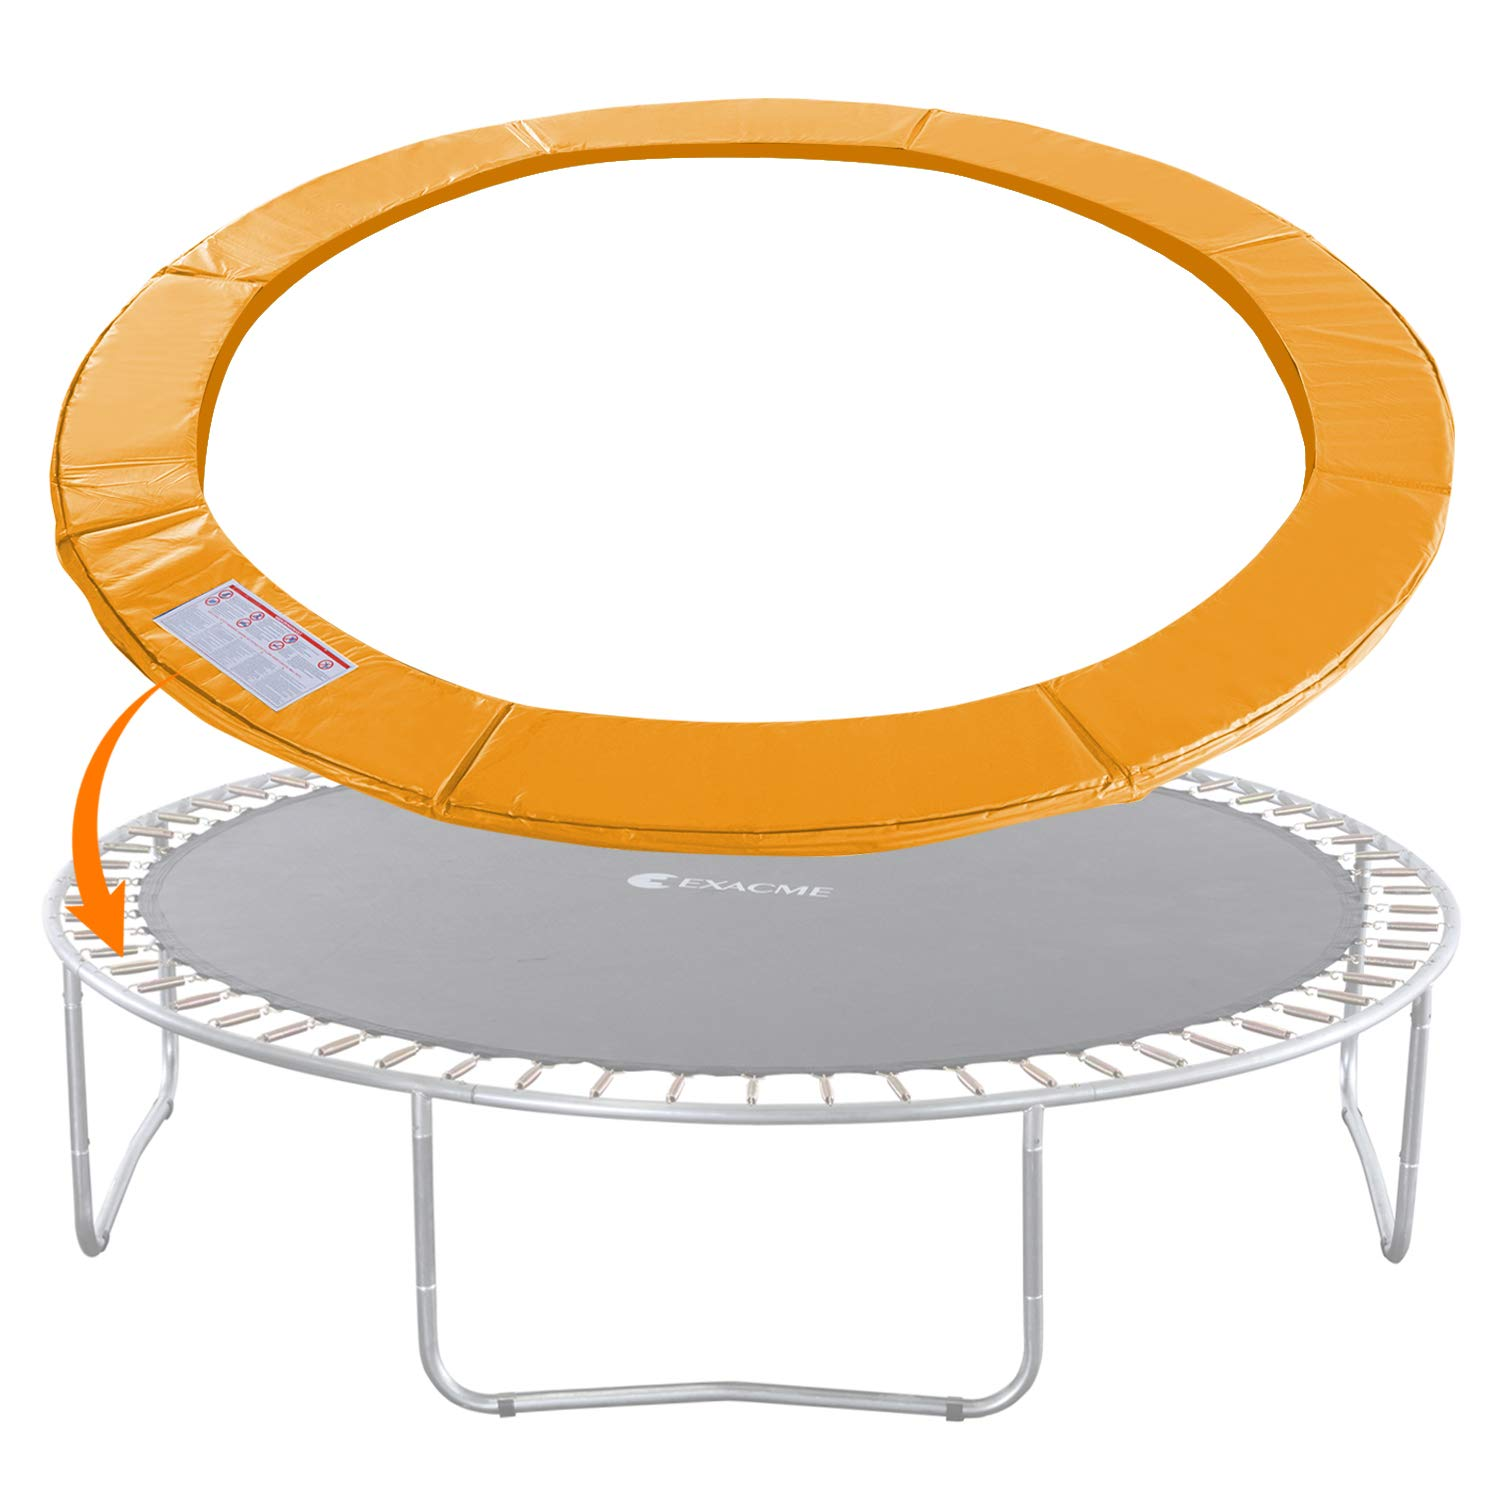 Exacme Trampoline Replacement Safety Pad Round Spring Cover, No Slots (Orange, 15 Foot) by Exacme